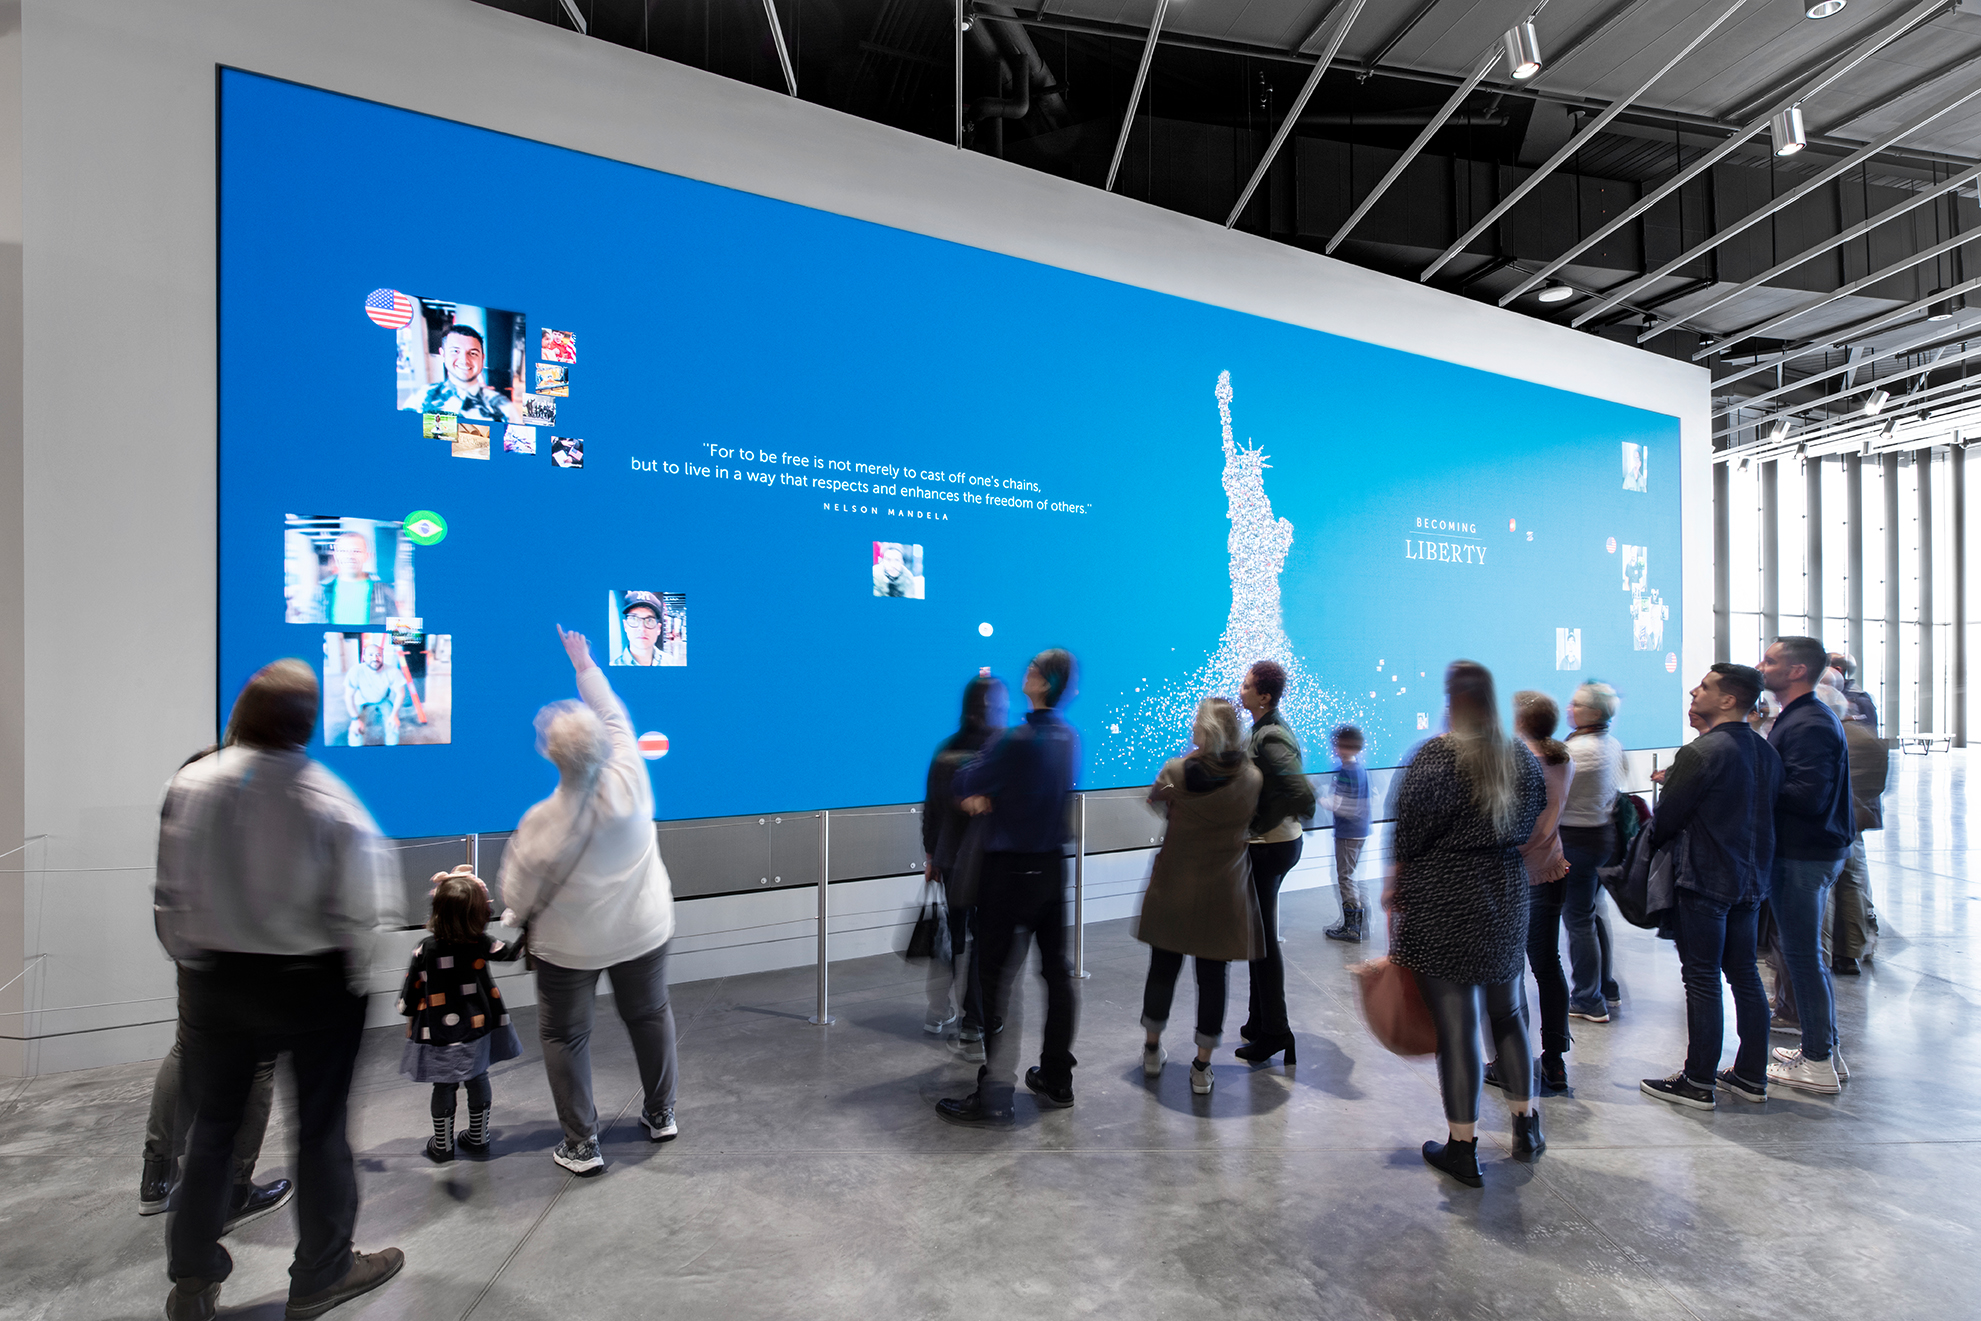 videowall at the statue of liberty museum